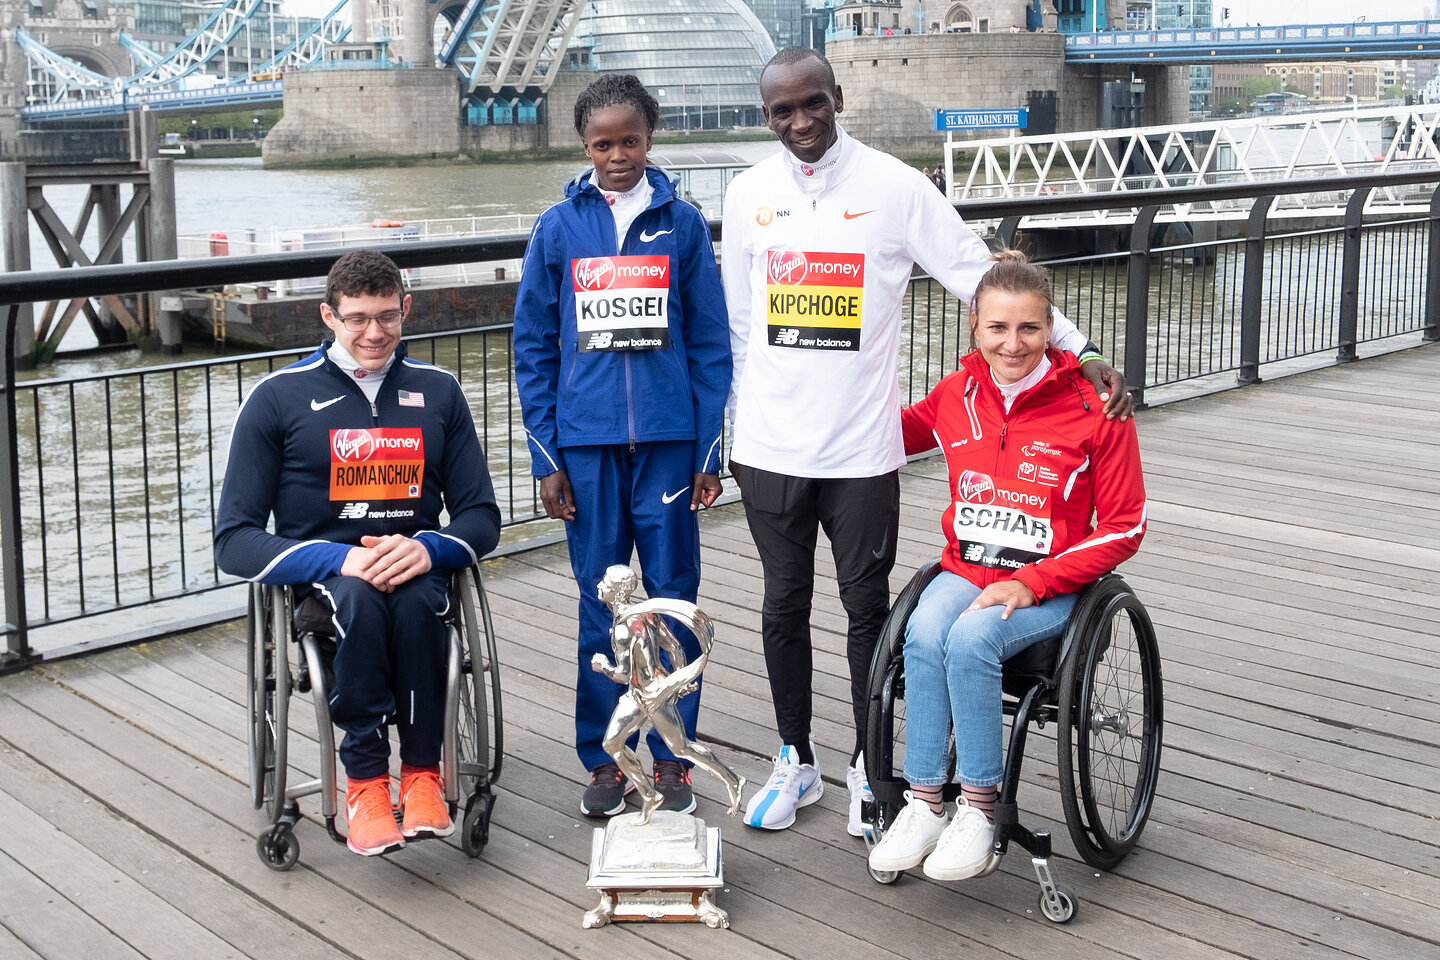 London Marathon 2019 Winners